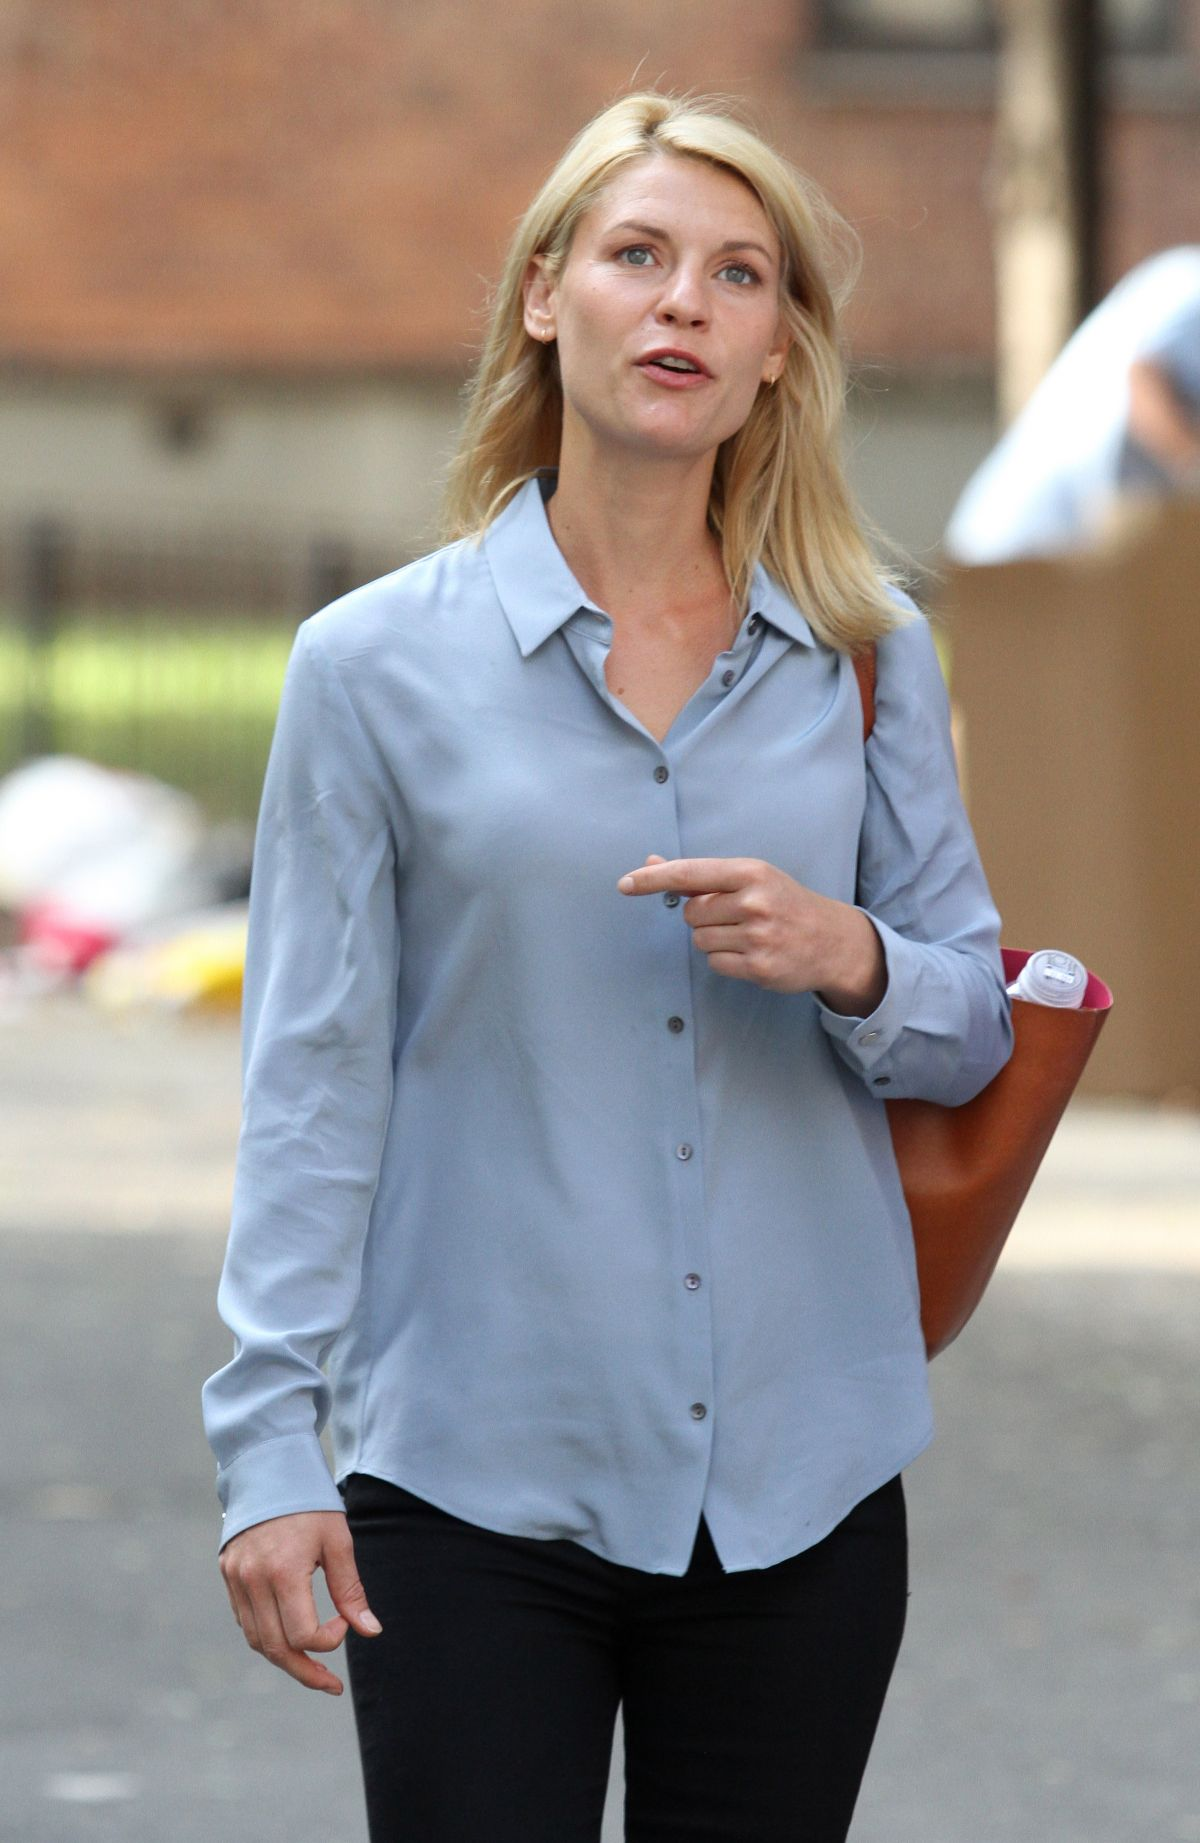 CLAIRE DANES on the Set of 'Homeland' in New York 08/29 ... Claire Danes